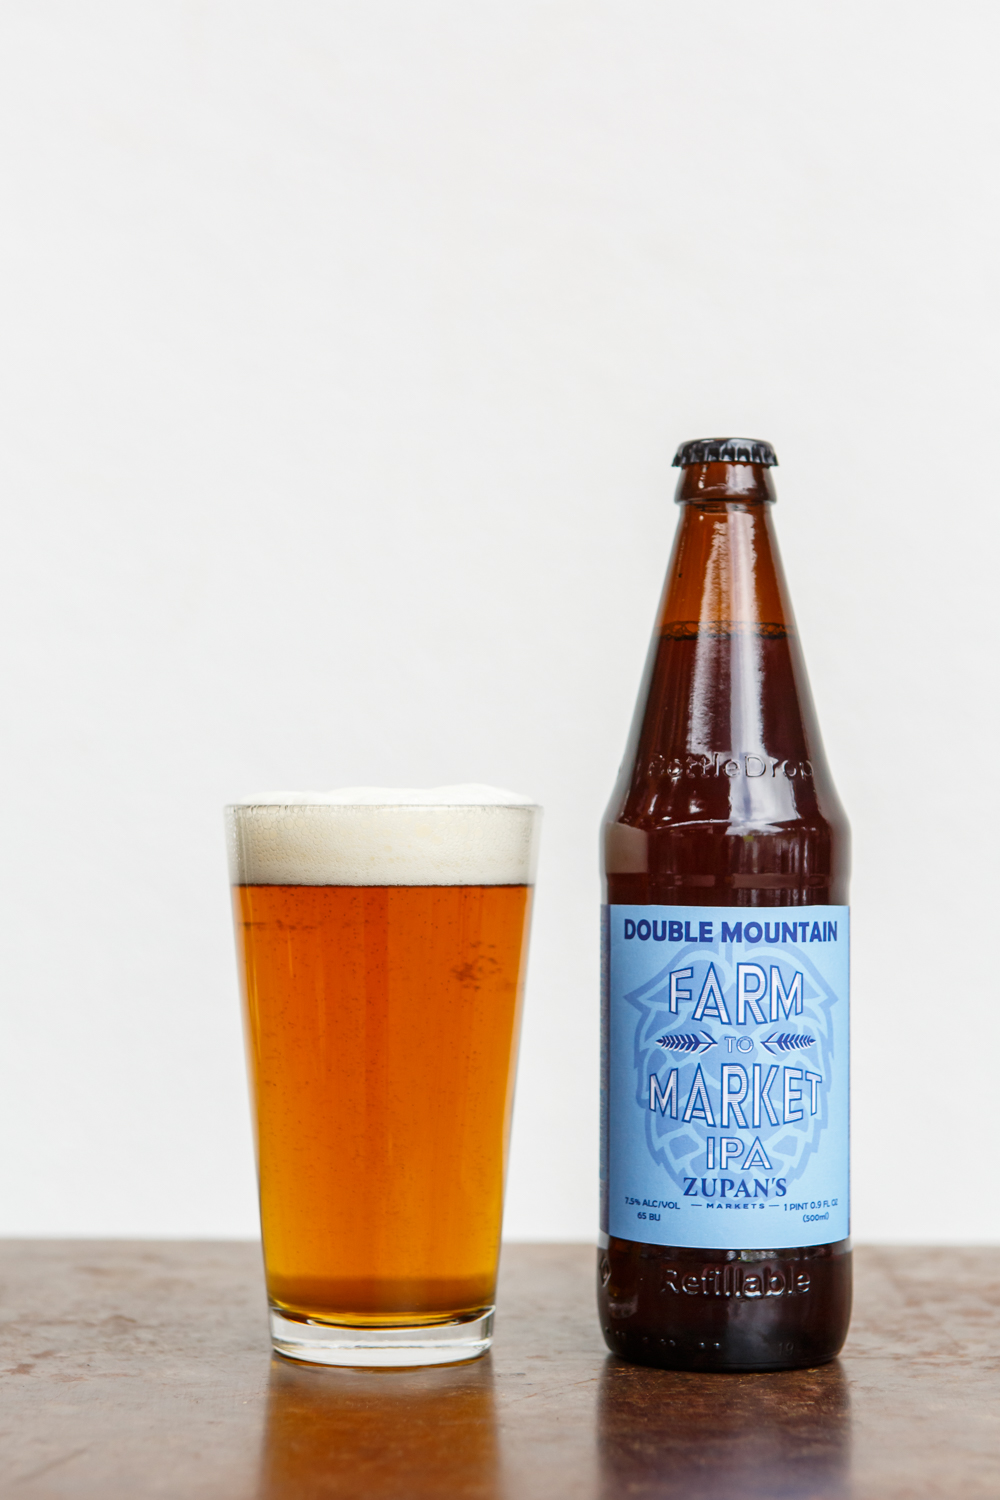 image of Zupan's + Double Mountain Farm To Market IPA courtesy of Zupan's Markets